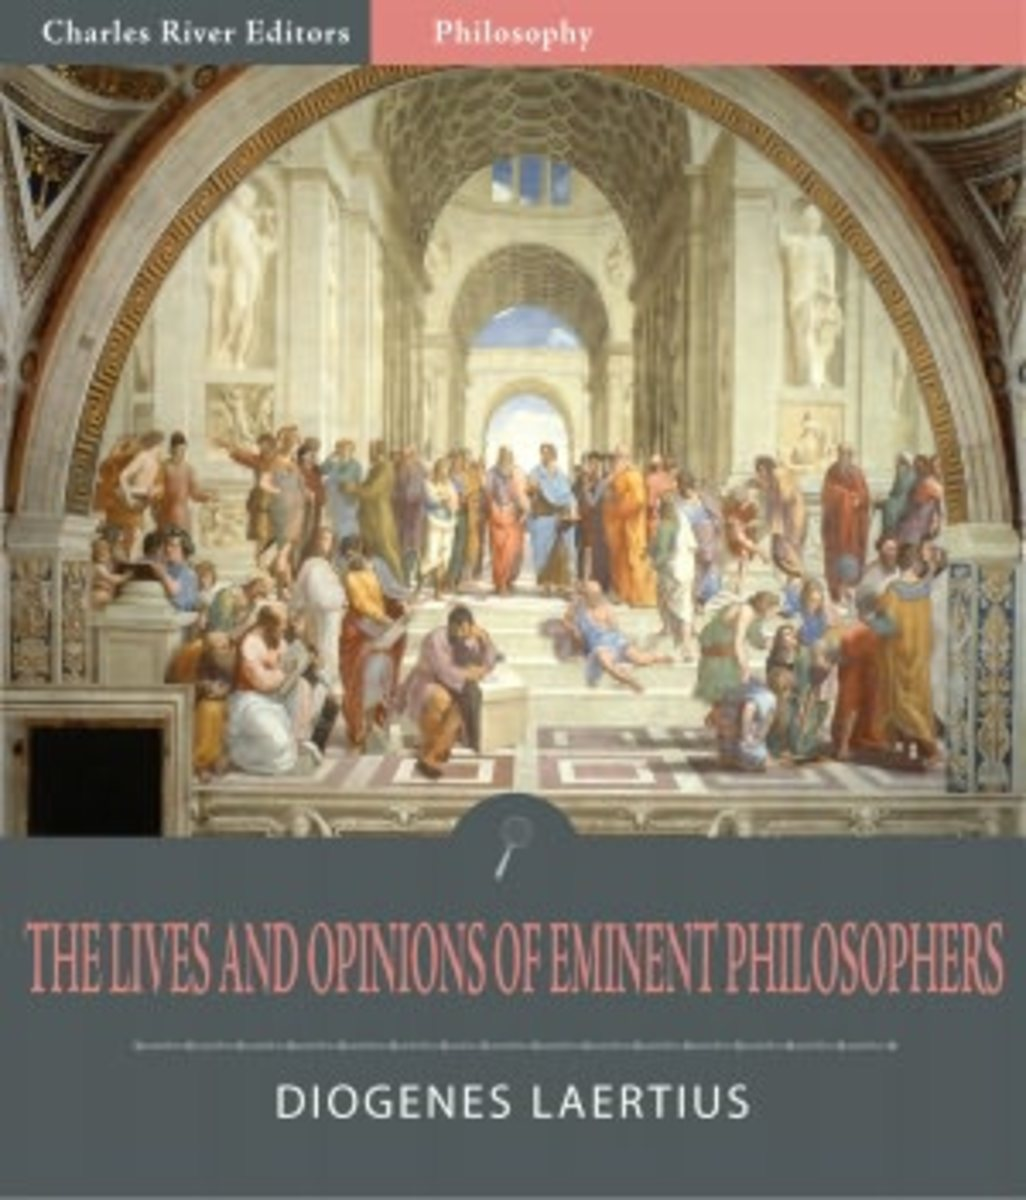 THE LIVES AND OPINIONS OF EMINENT PHILOSOPHERS IS STILL IN PRINT AND REPRESENTS A CANON OF ANCIENT GREEK PHILOSOPHY